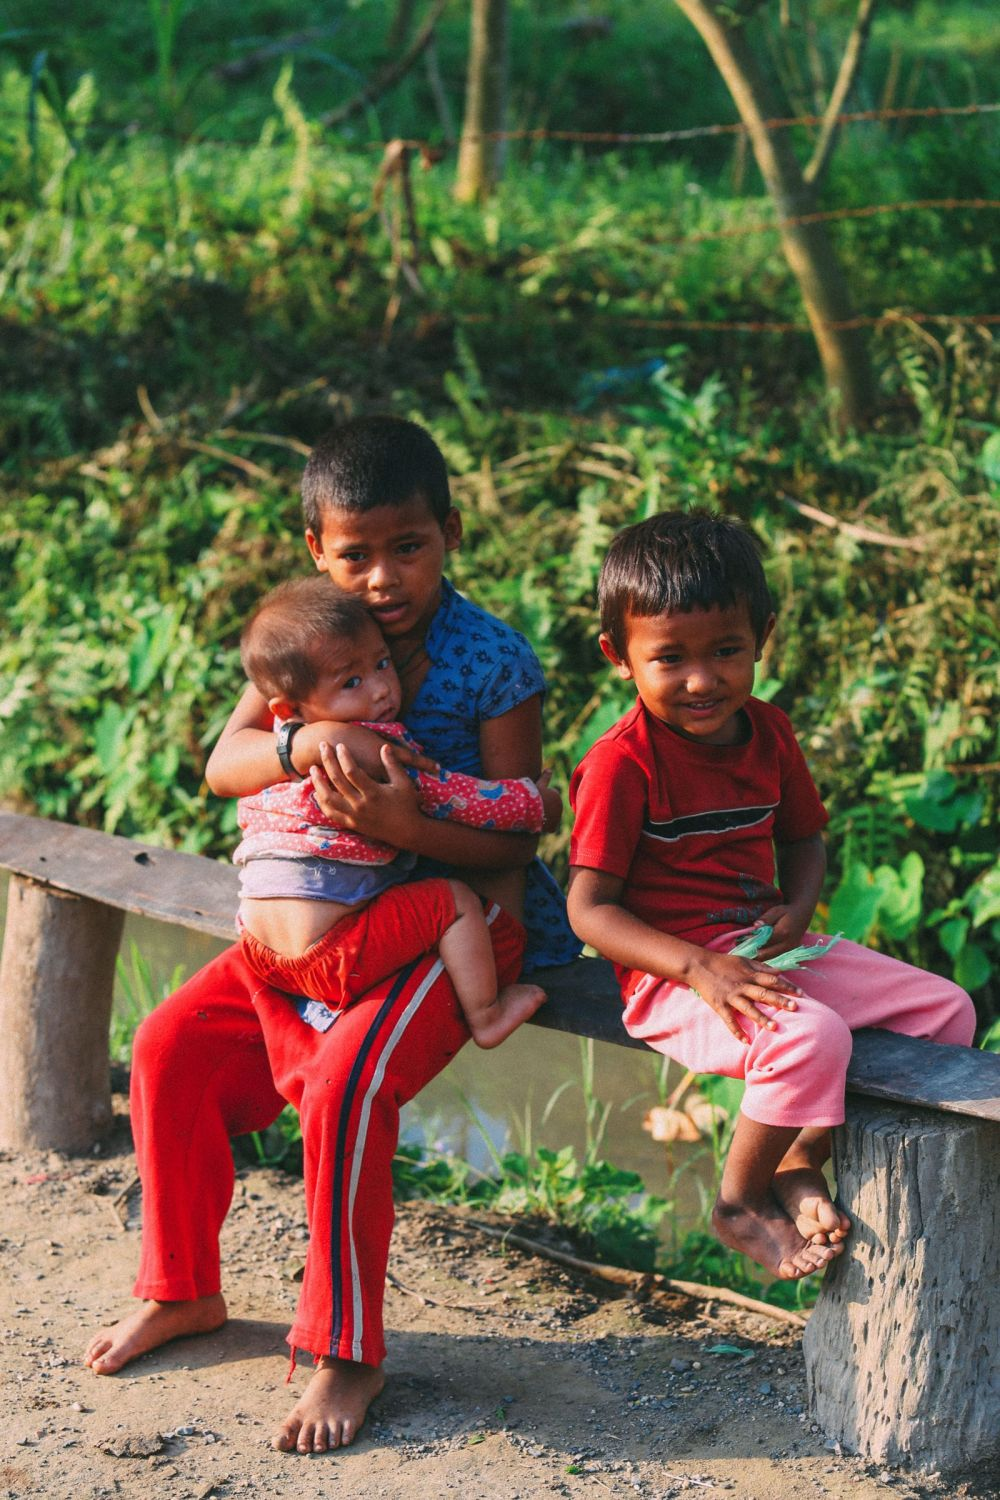 The Sights, Sounds And People Of Chitwan, Nepal (8)